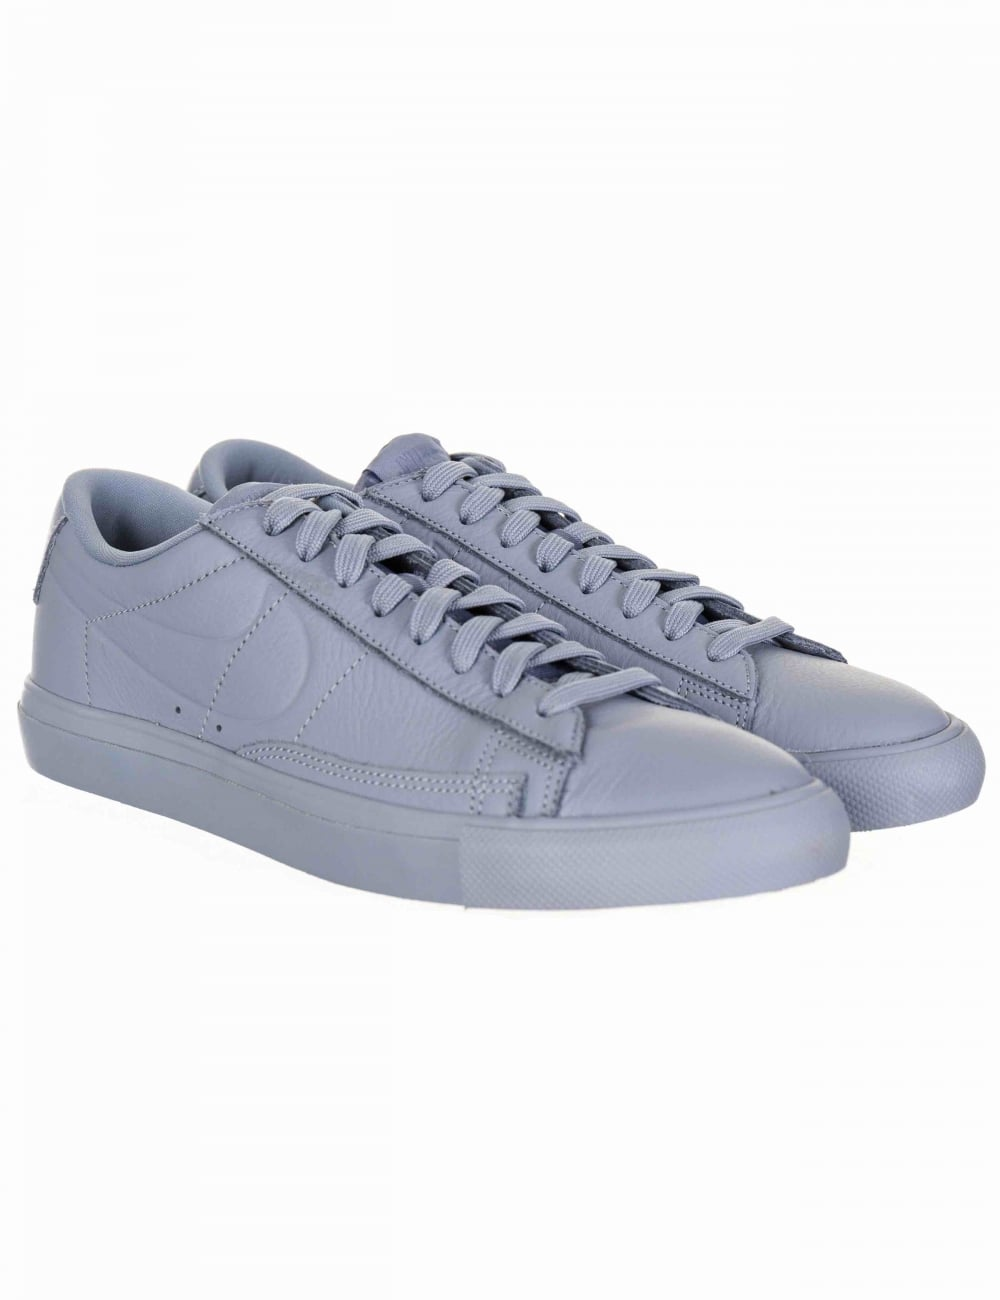 best service e0efe 5440d Blazer Low Trainers - Glacier Grey